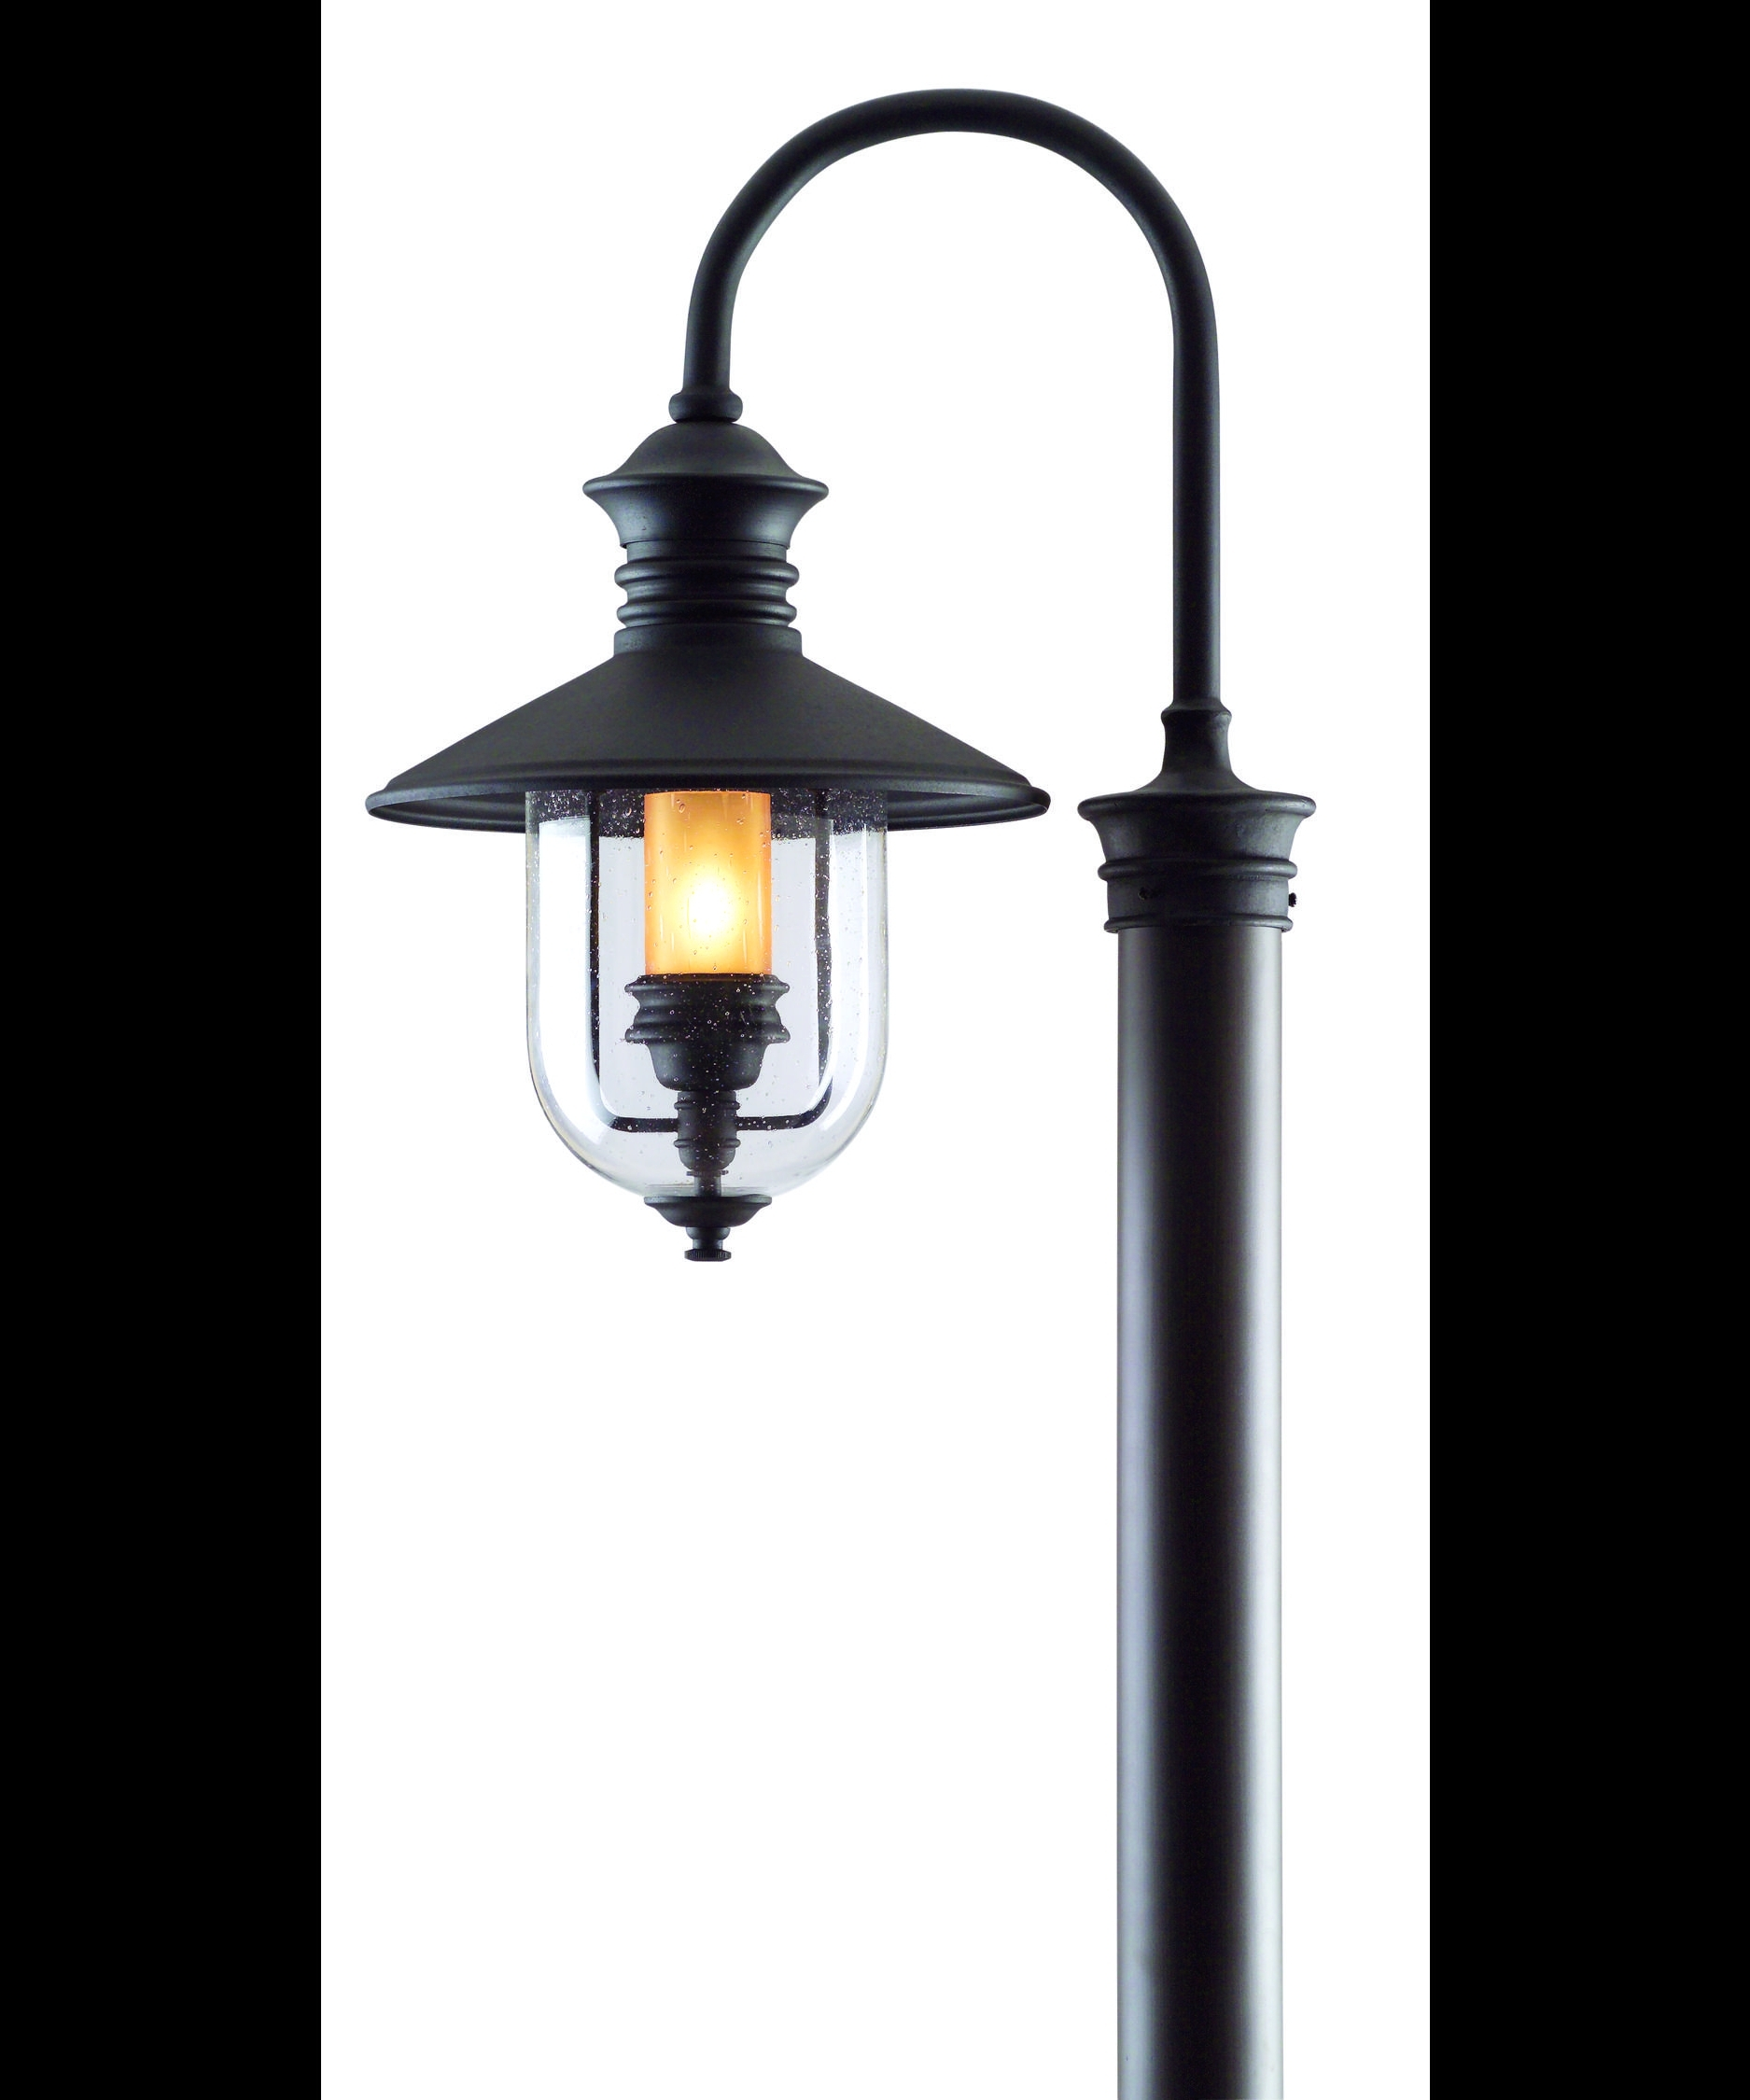 Outdoor Light Fixture Covers – Outdoor Lighting Ideas For Best And Newest Outdoor Pole Lanterns (View 16 of 20)